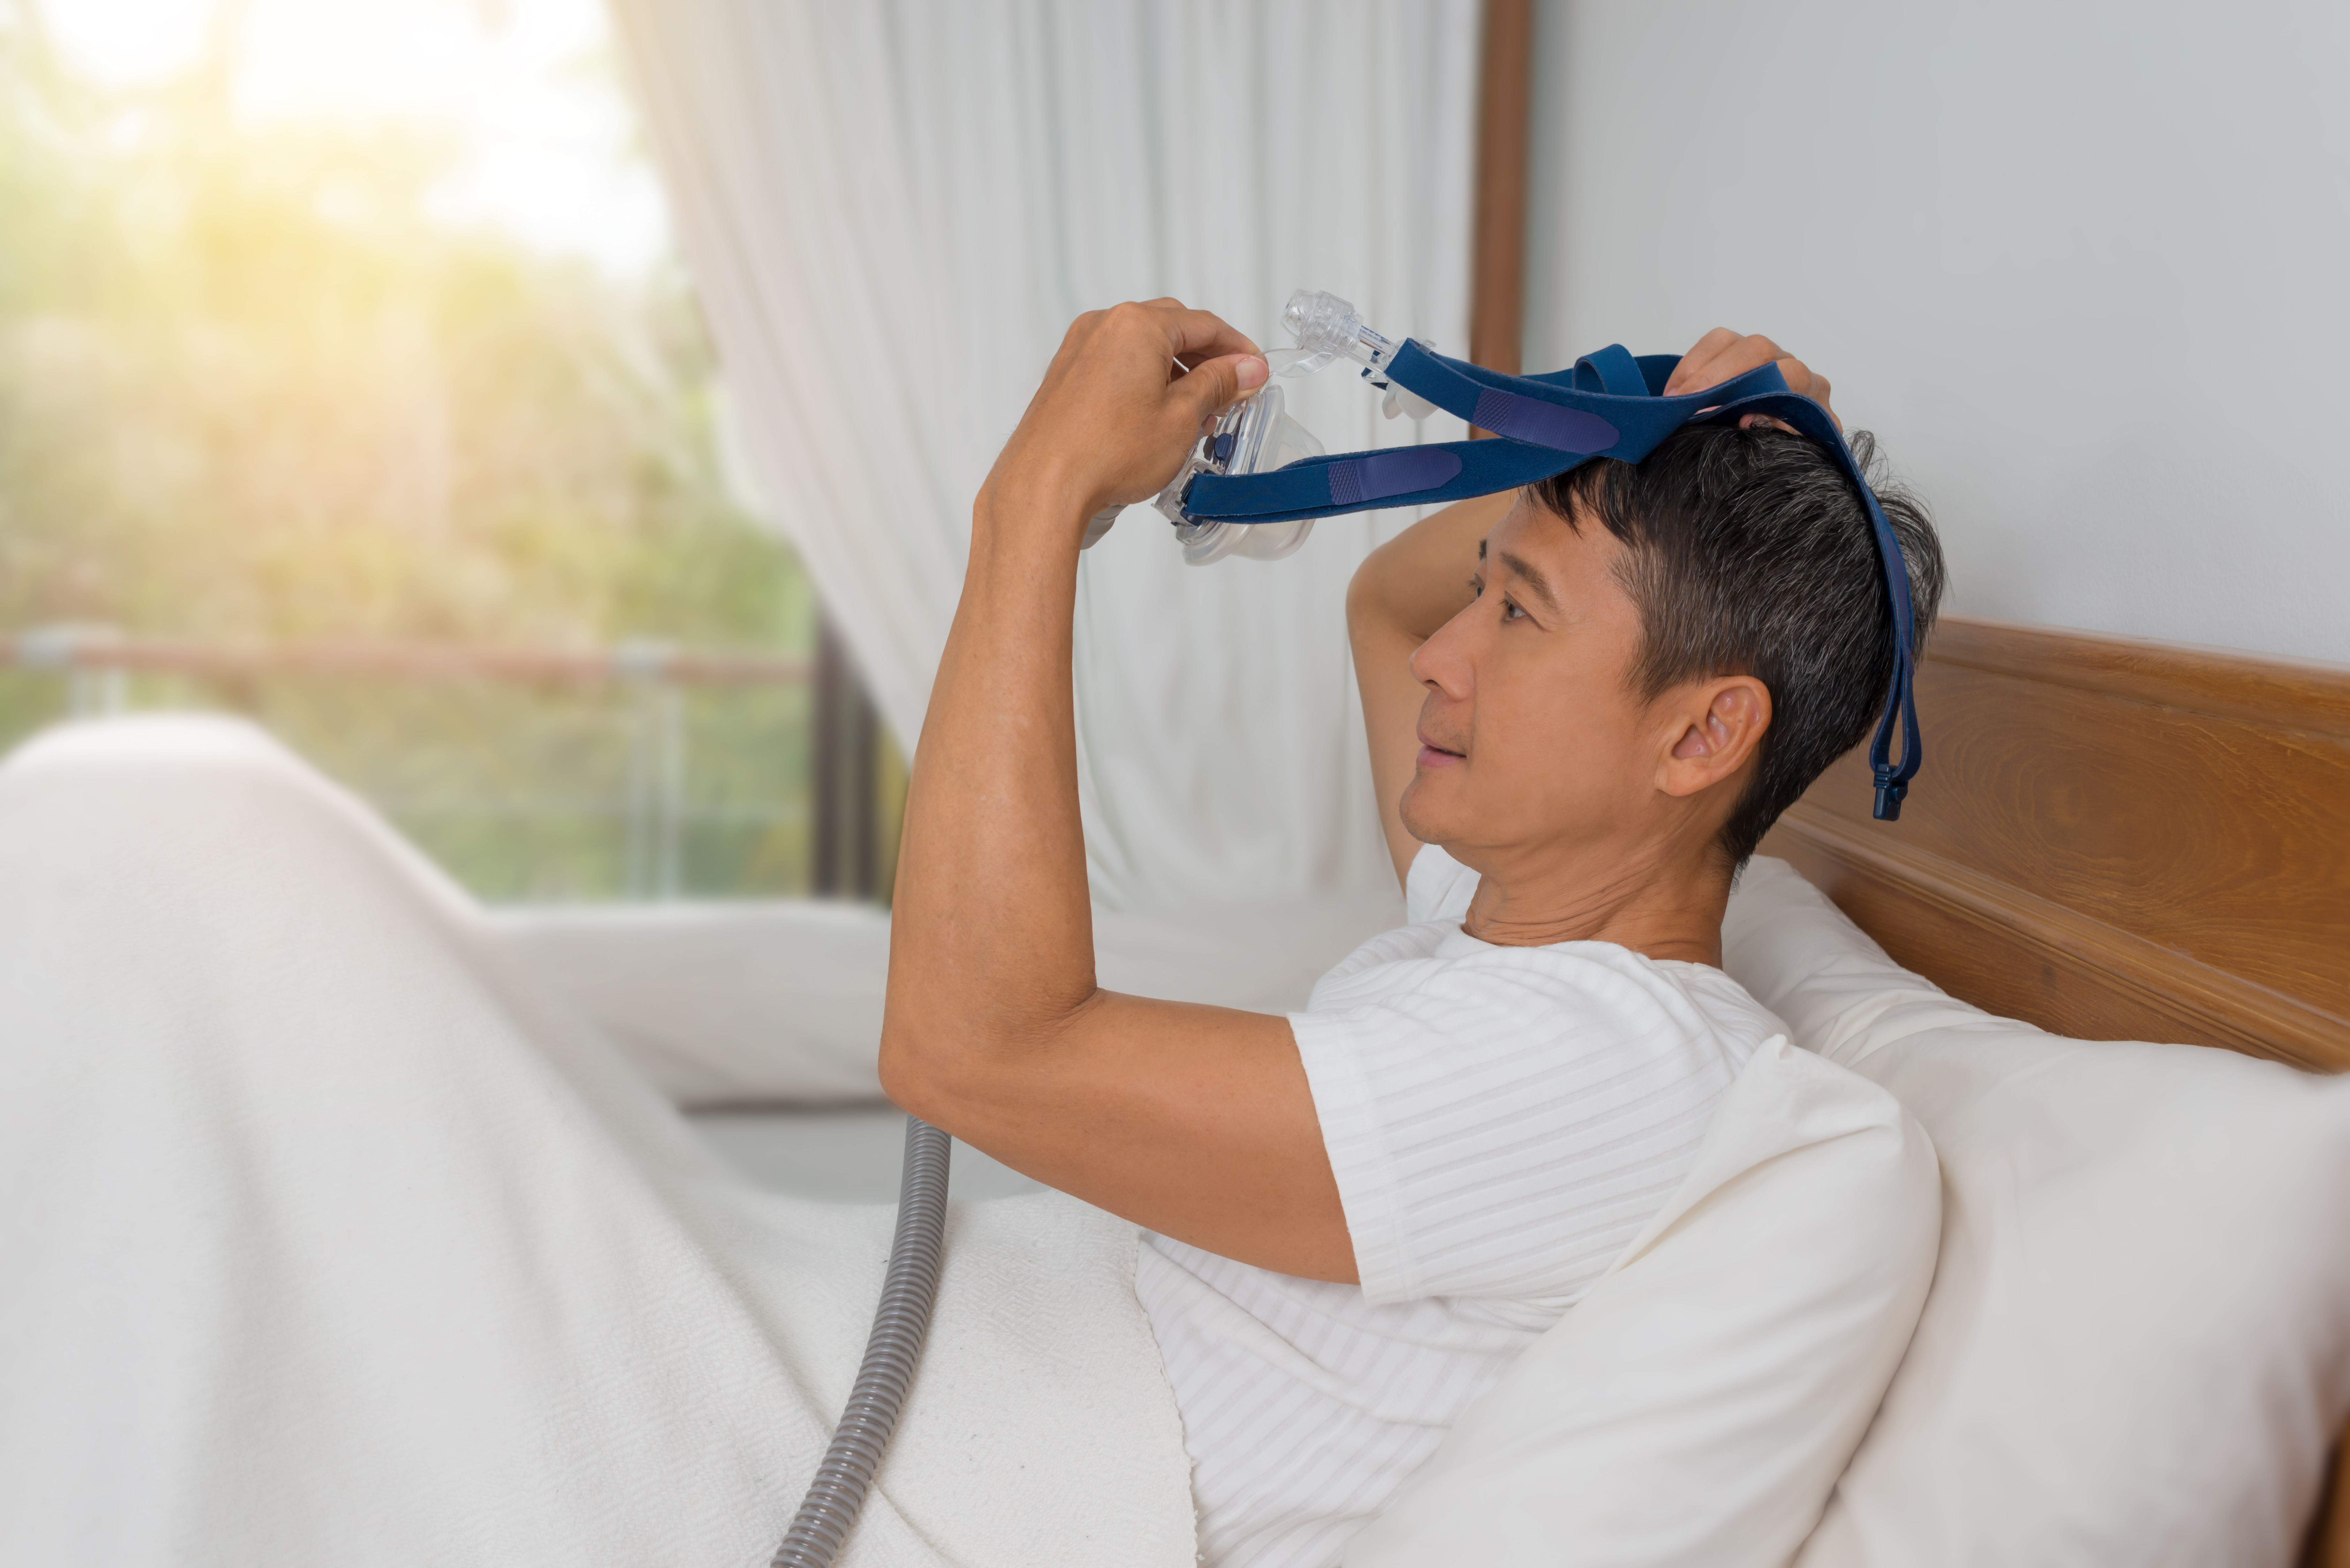 Man removing CPAP Mask while laying in bed